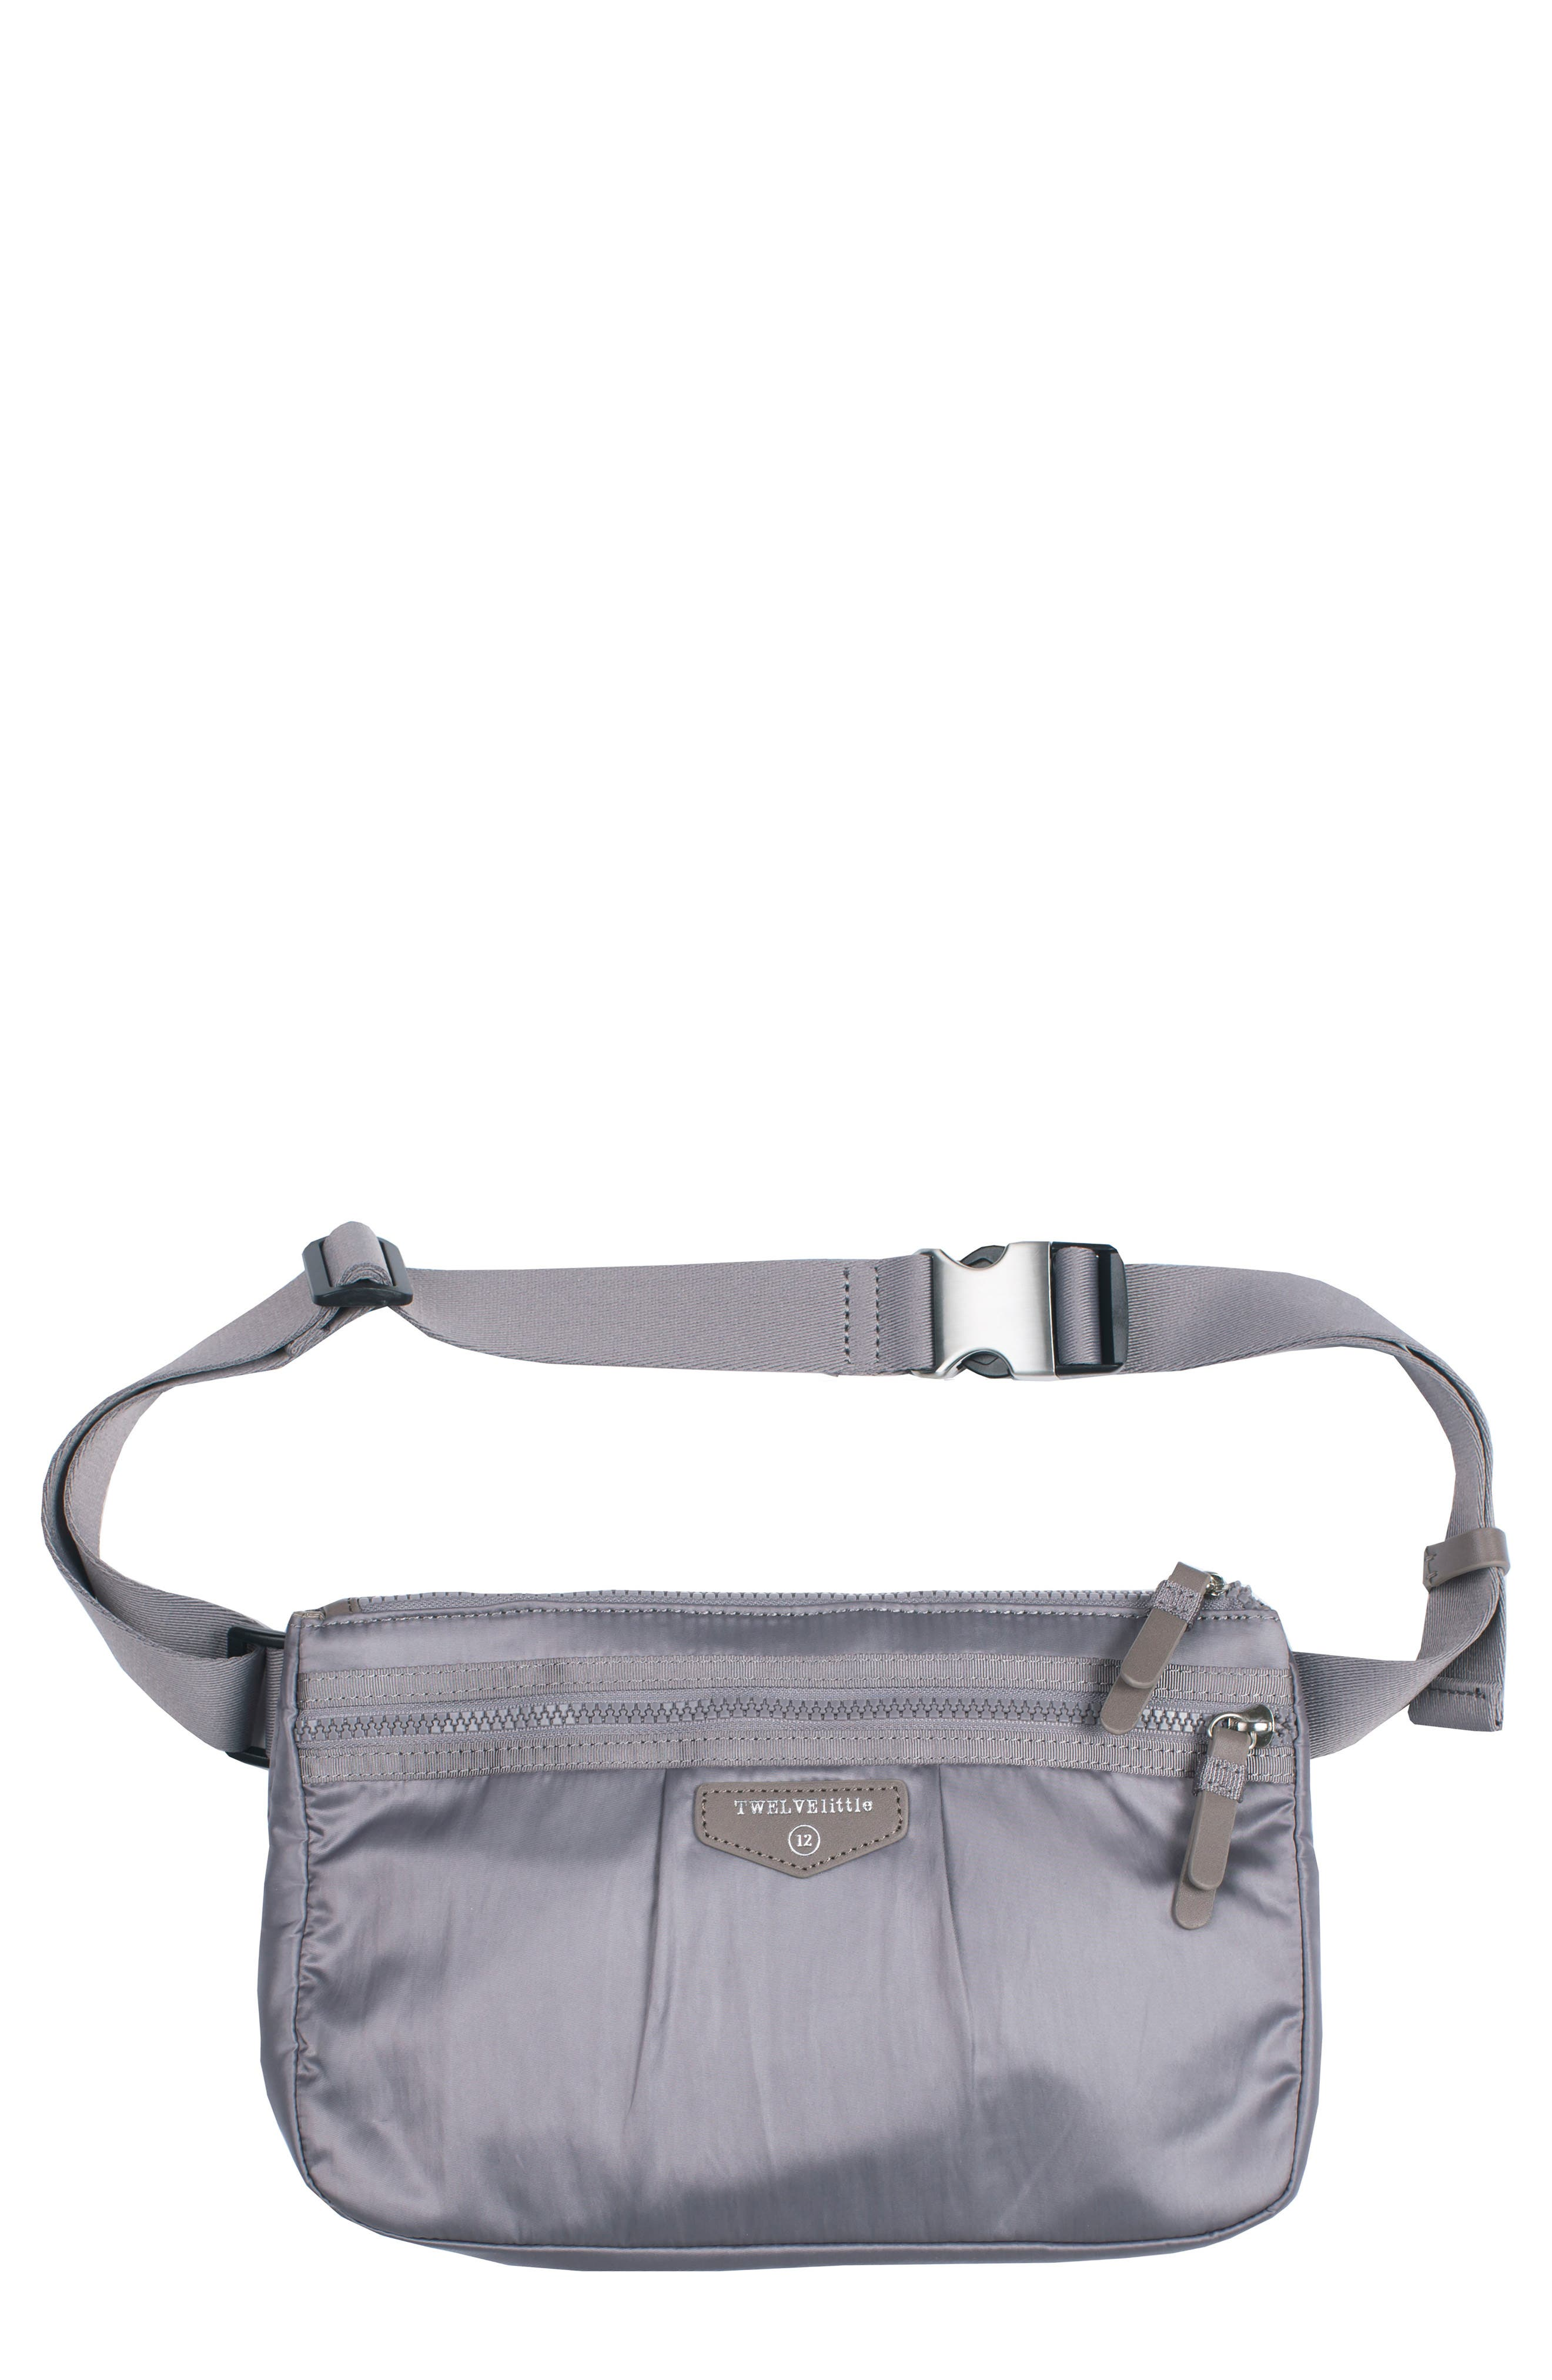 Fanny Pack,                         Main,                         color, GREY